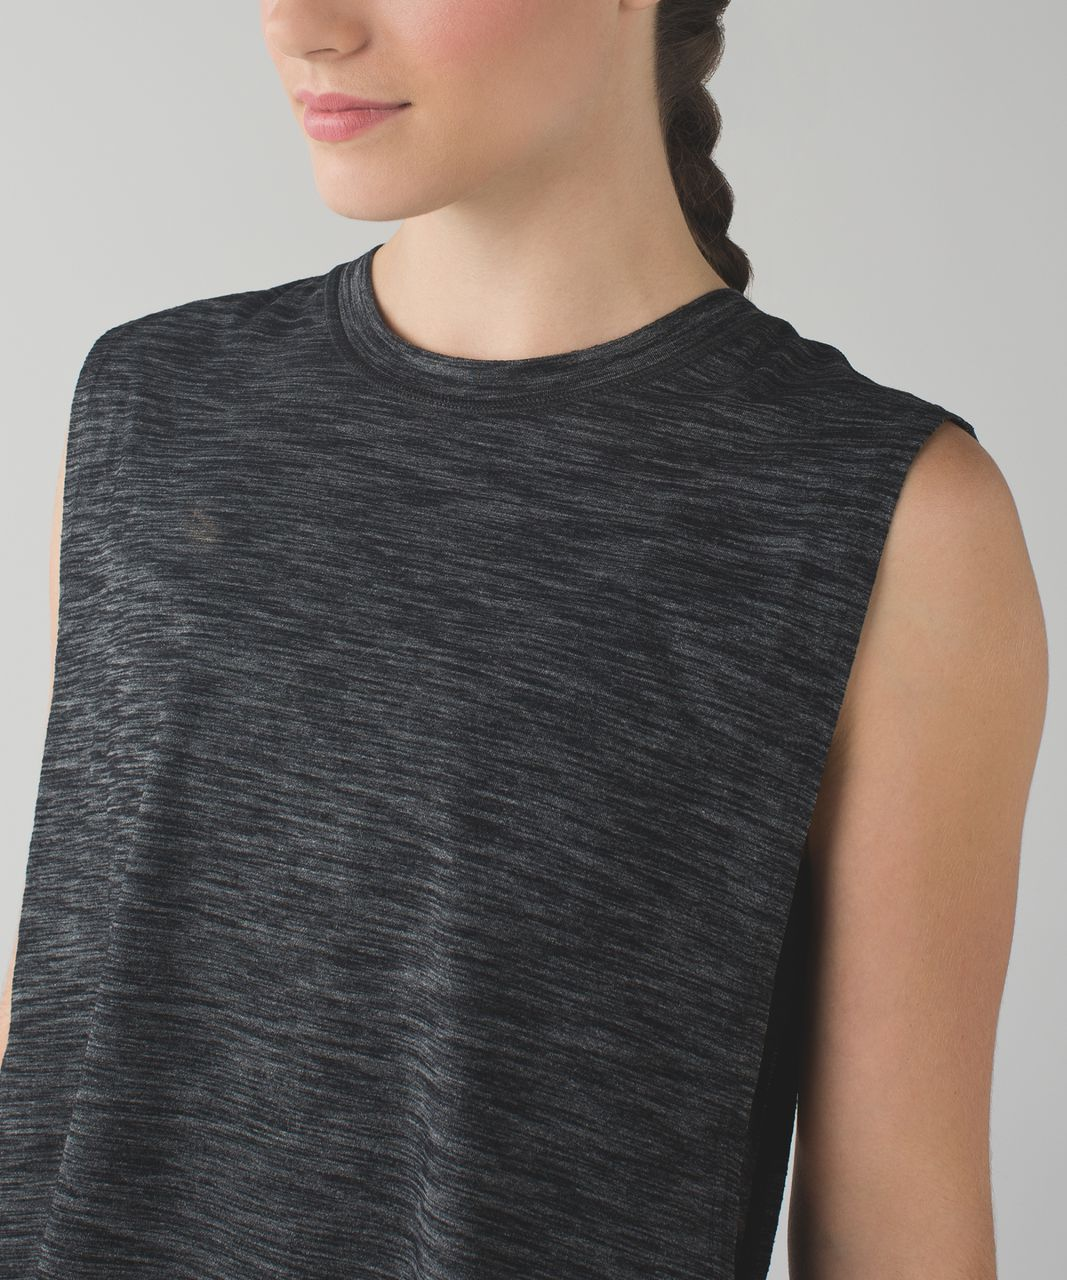 Lululemon Layer Up Dress - Heathered Black